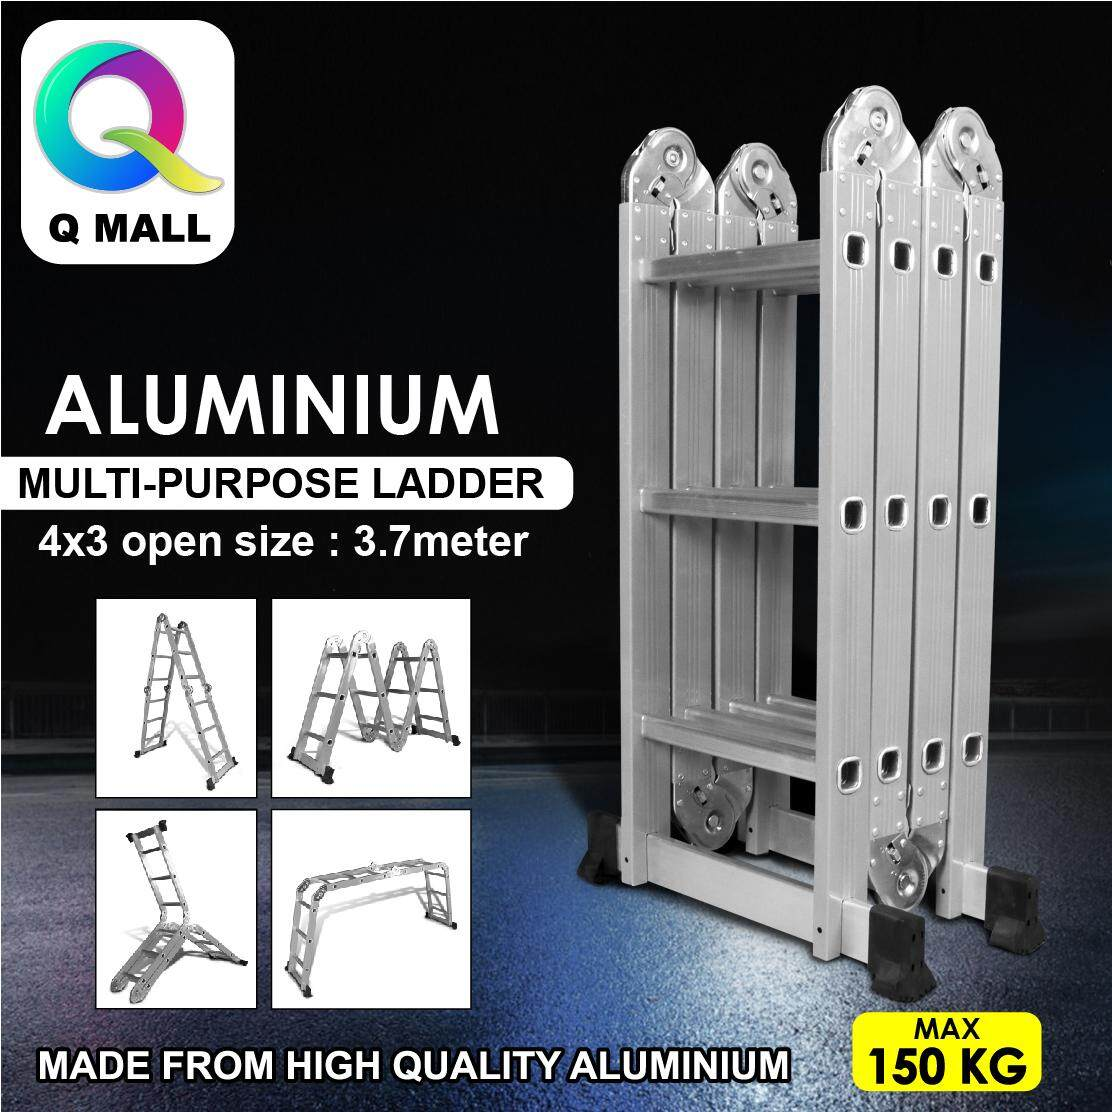 Q MALL Aluminium Multipurpose Ladder 12  Steps Folding Ladder Medium Duty Tangga 3.7meter - EN131